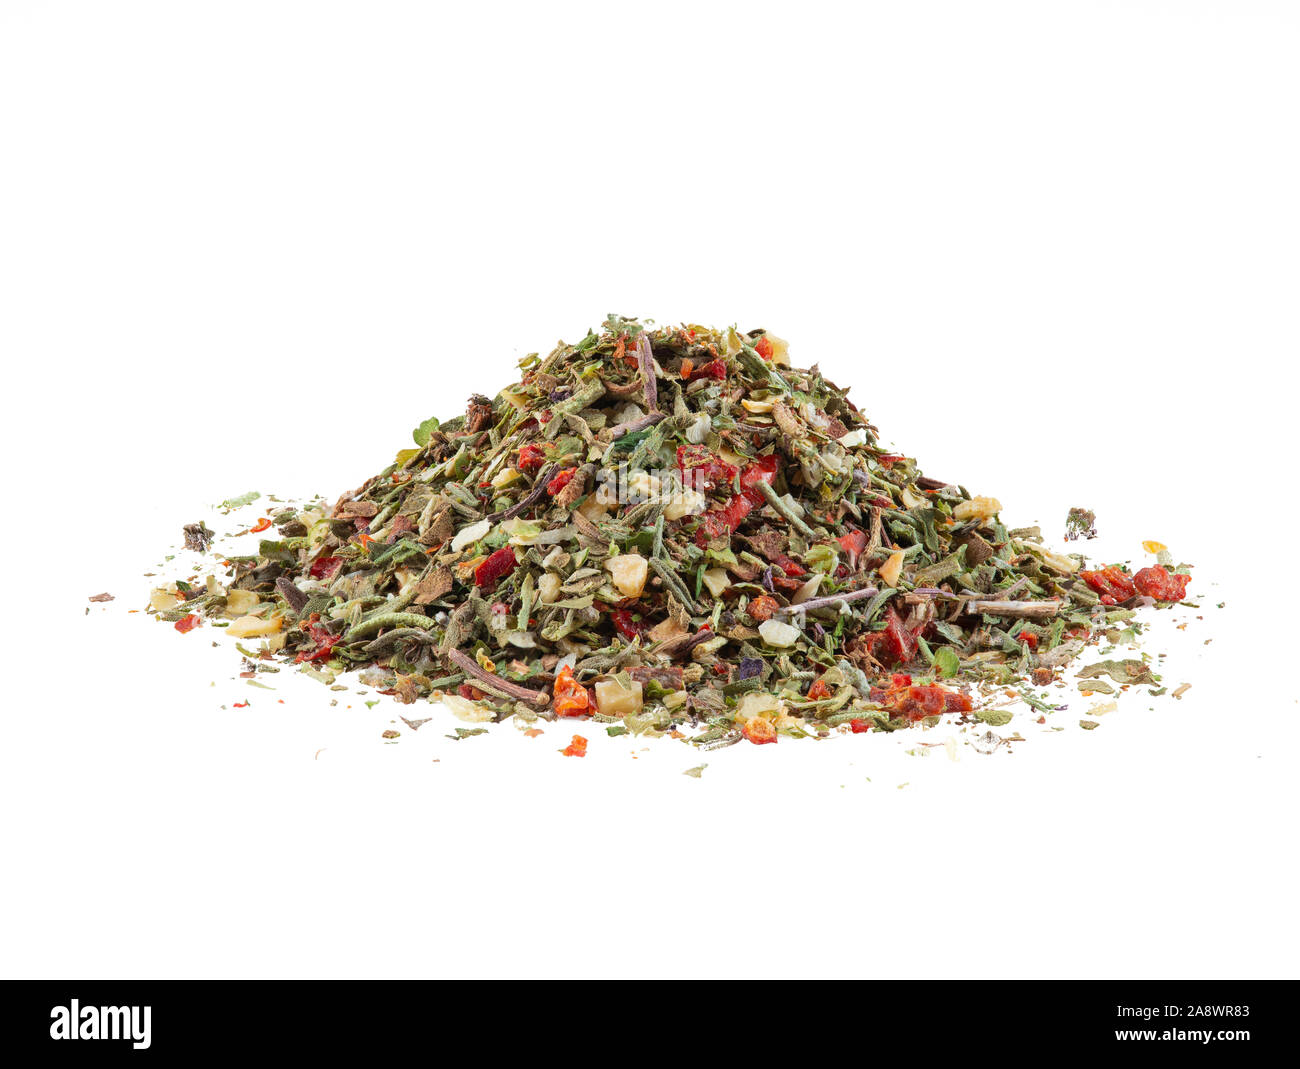 Pile of some chopped, mixed herbs isolated on white background with copy space for text or images. Spices. Food, cooking, restaurant, packaging concep Stock Photo